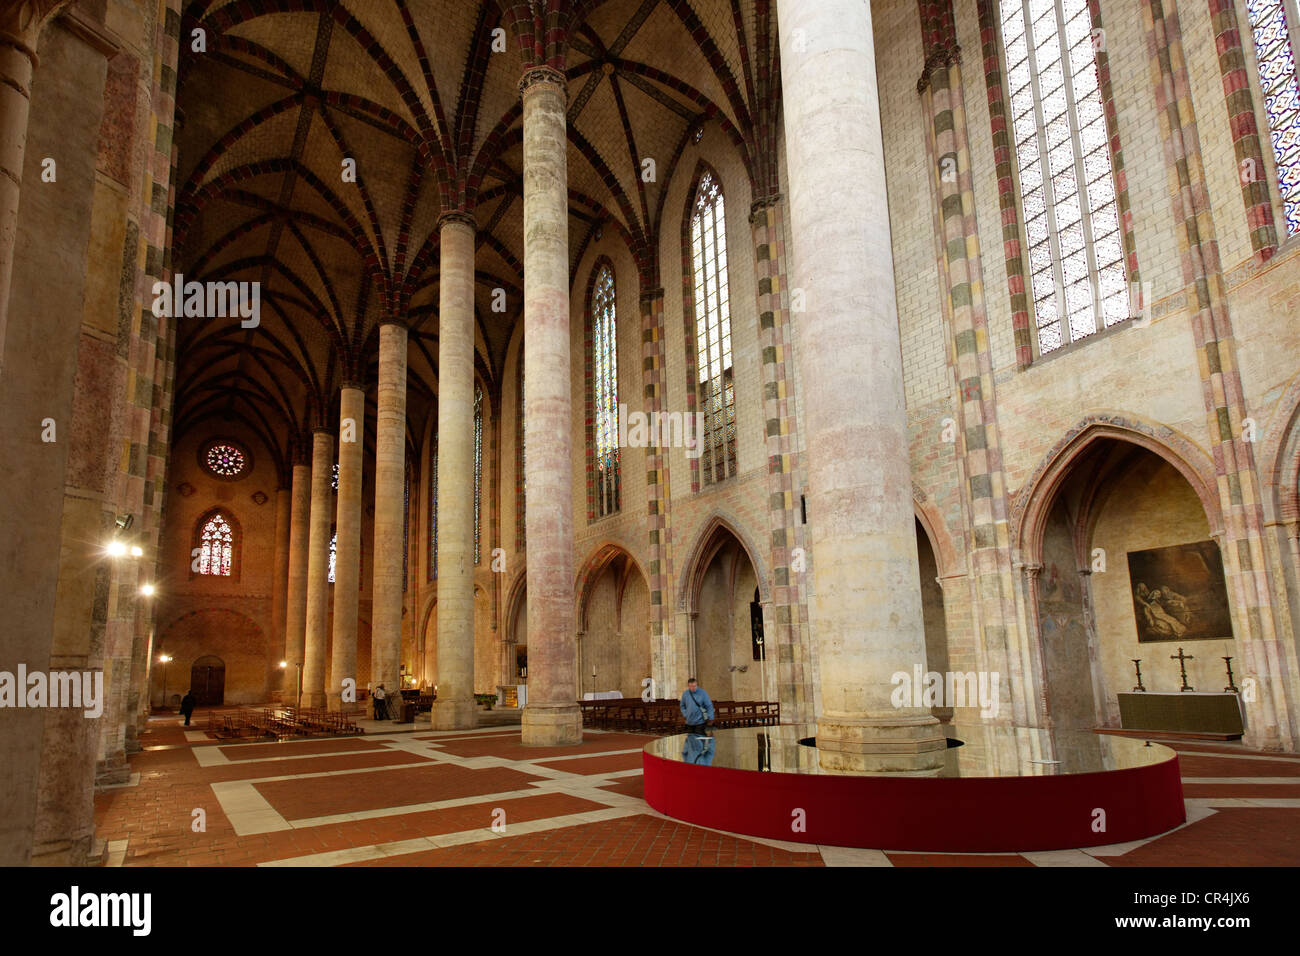 Church of the Jacobins, Haute-Garonne, Toulouse, France, Europe - Stock Image